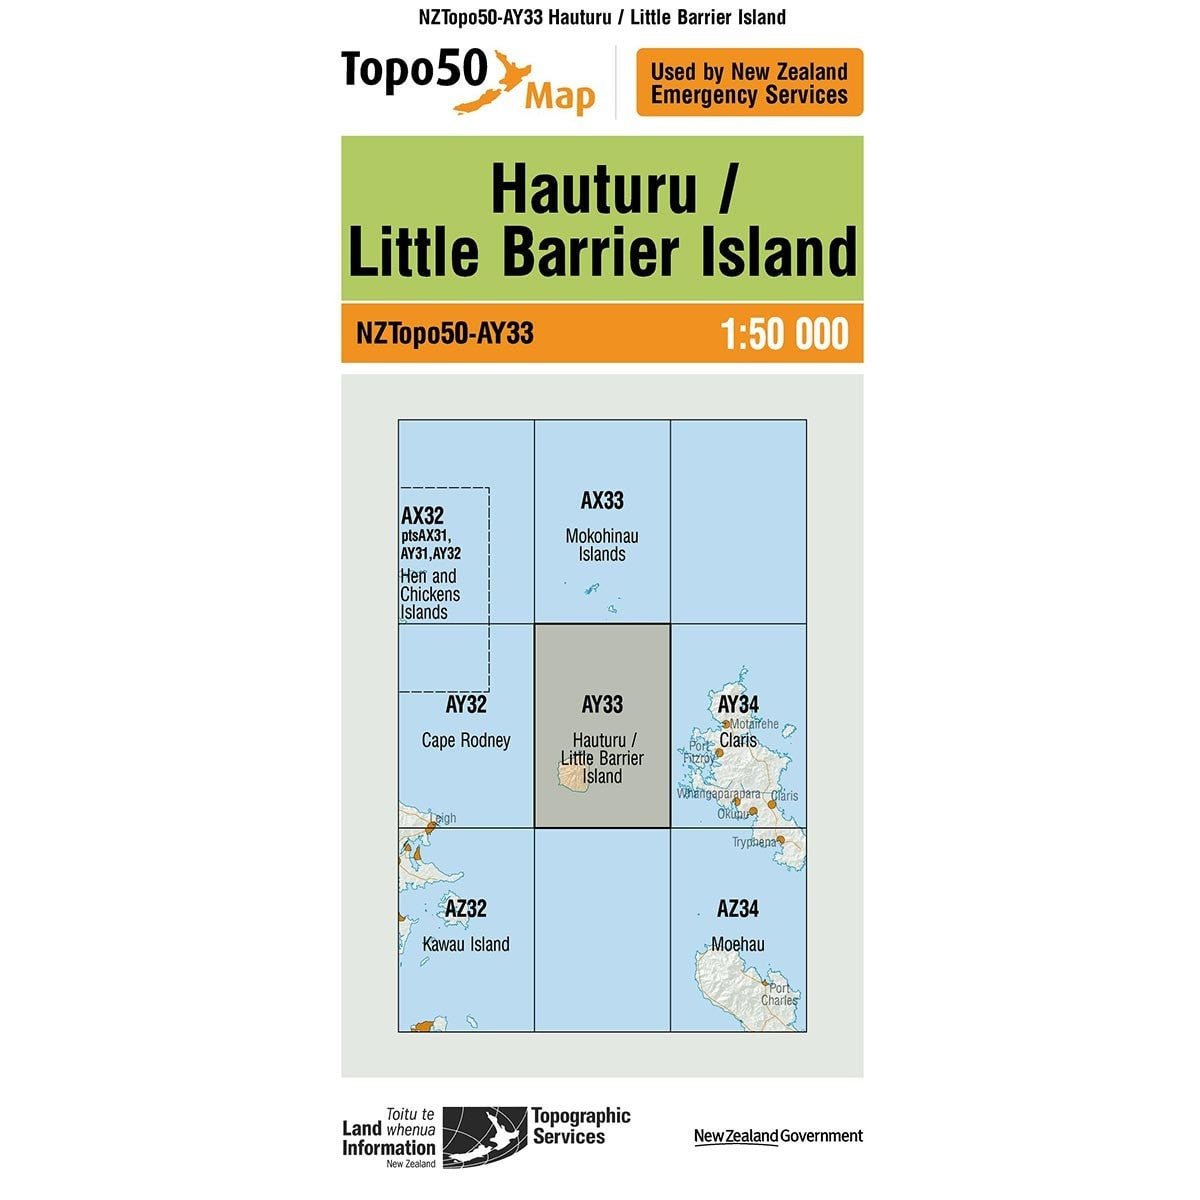 Topo50 AY33 Hauturu / Little Barrier Island